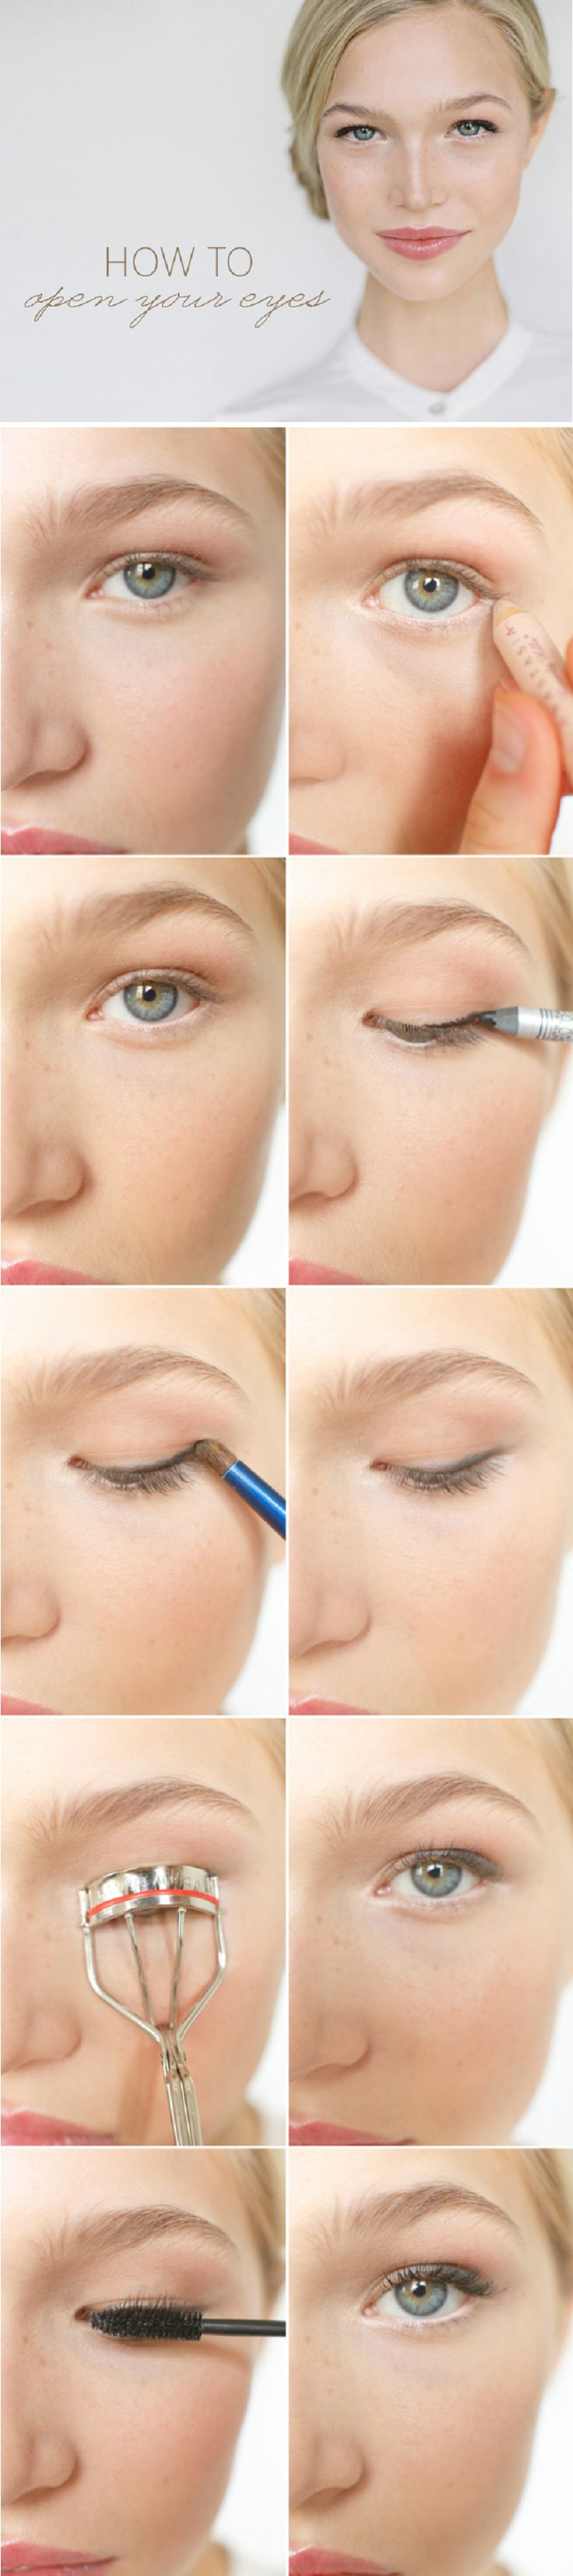 1040 best paint me images on pinterest make up beauty products makeup tips and tricks to make you look less tired this makeup tutorial shows you how to open your eyes to look more awake step by step beauty tutorials baditri Image collections